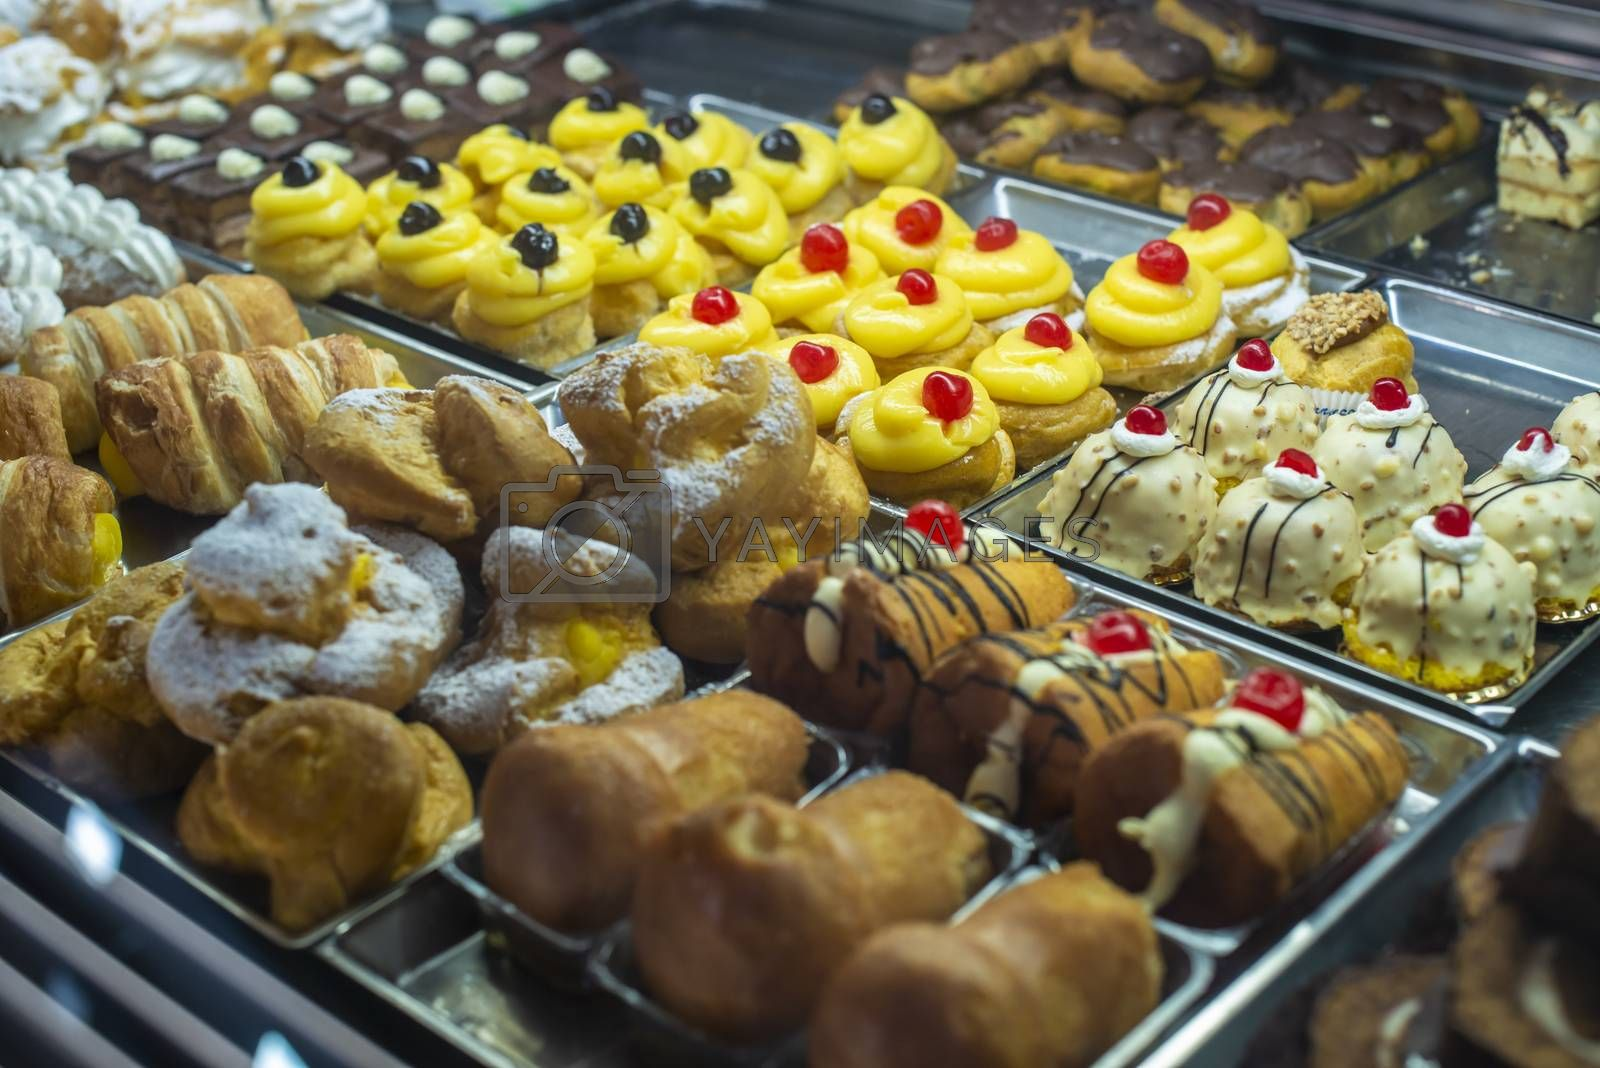 Italian pastry shop. Showcase on pastry shop. Cream and sweets.